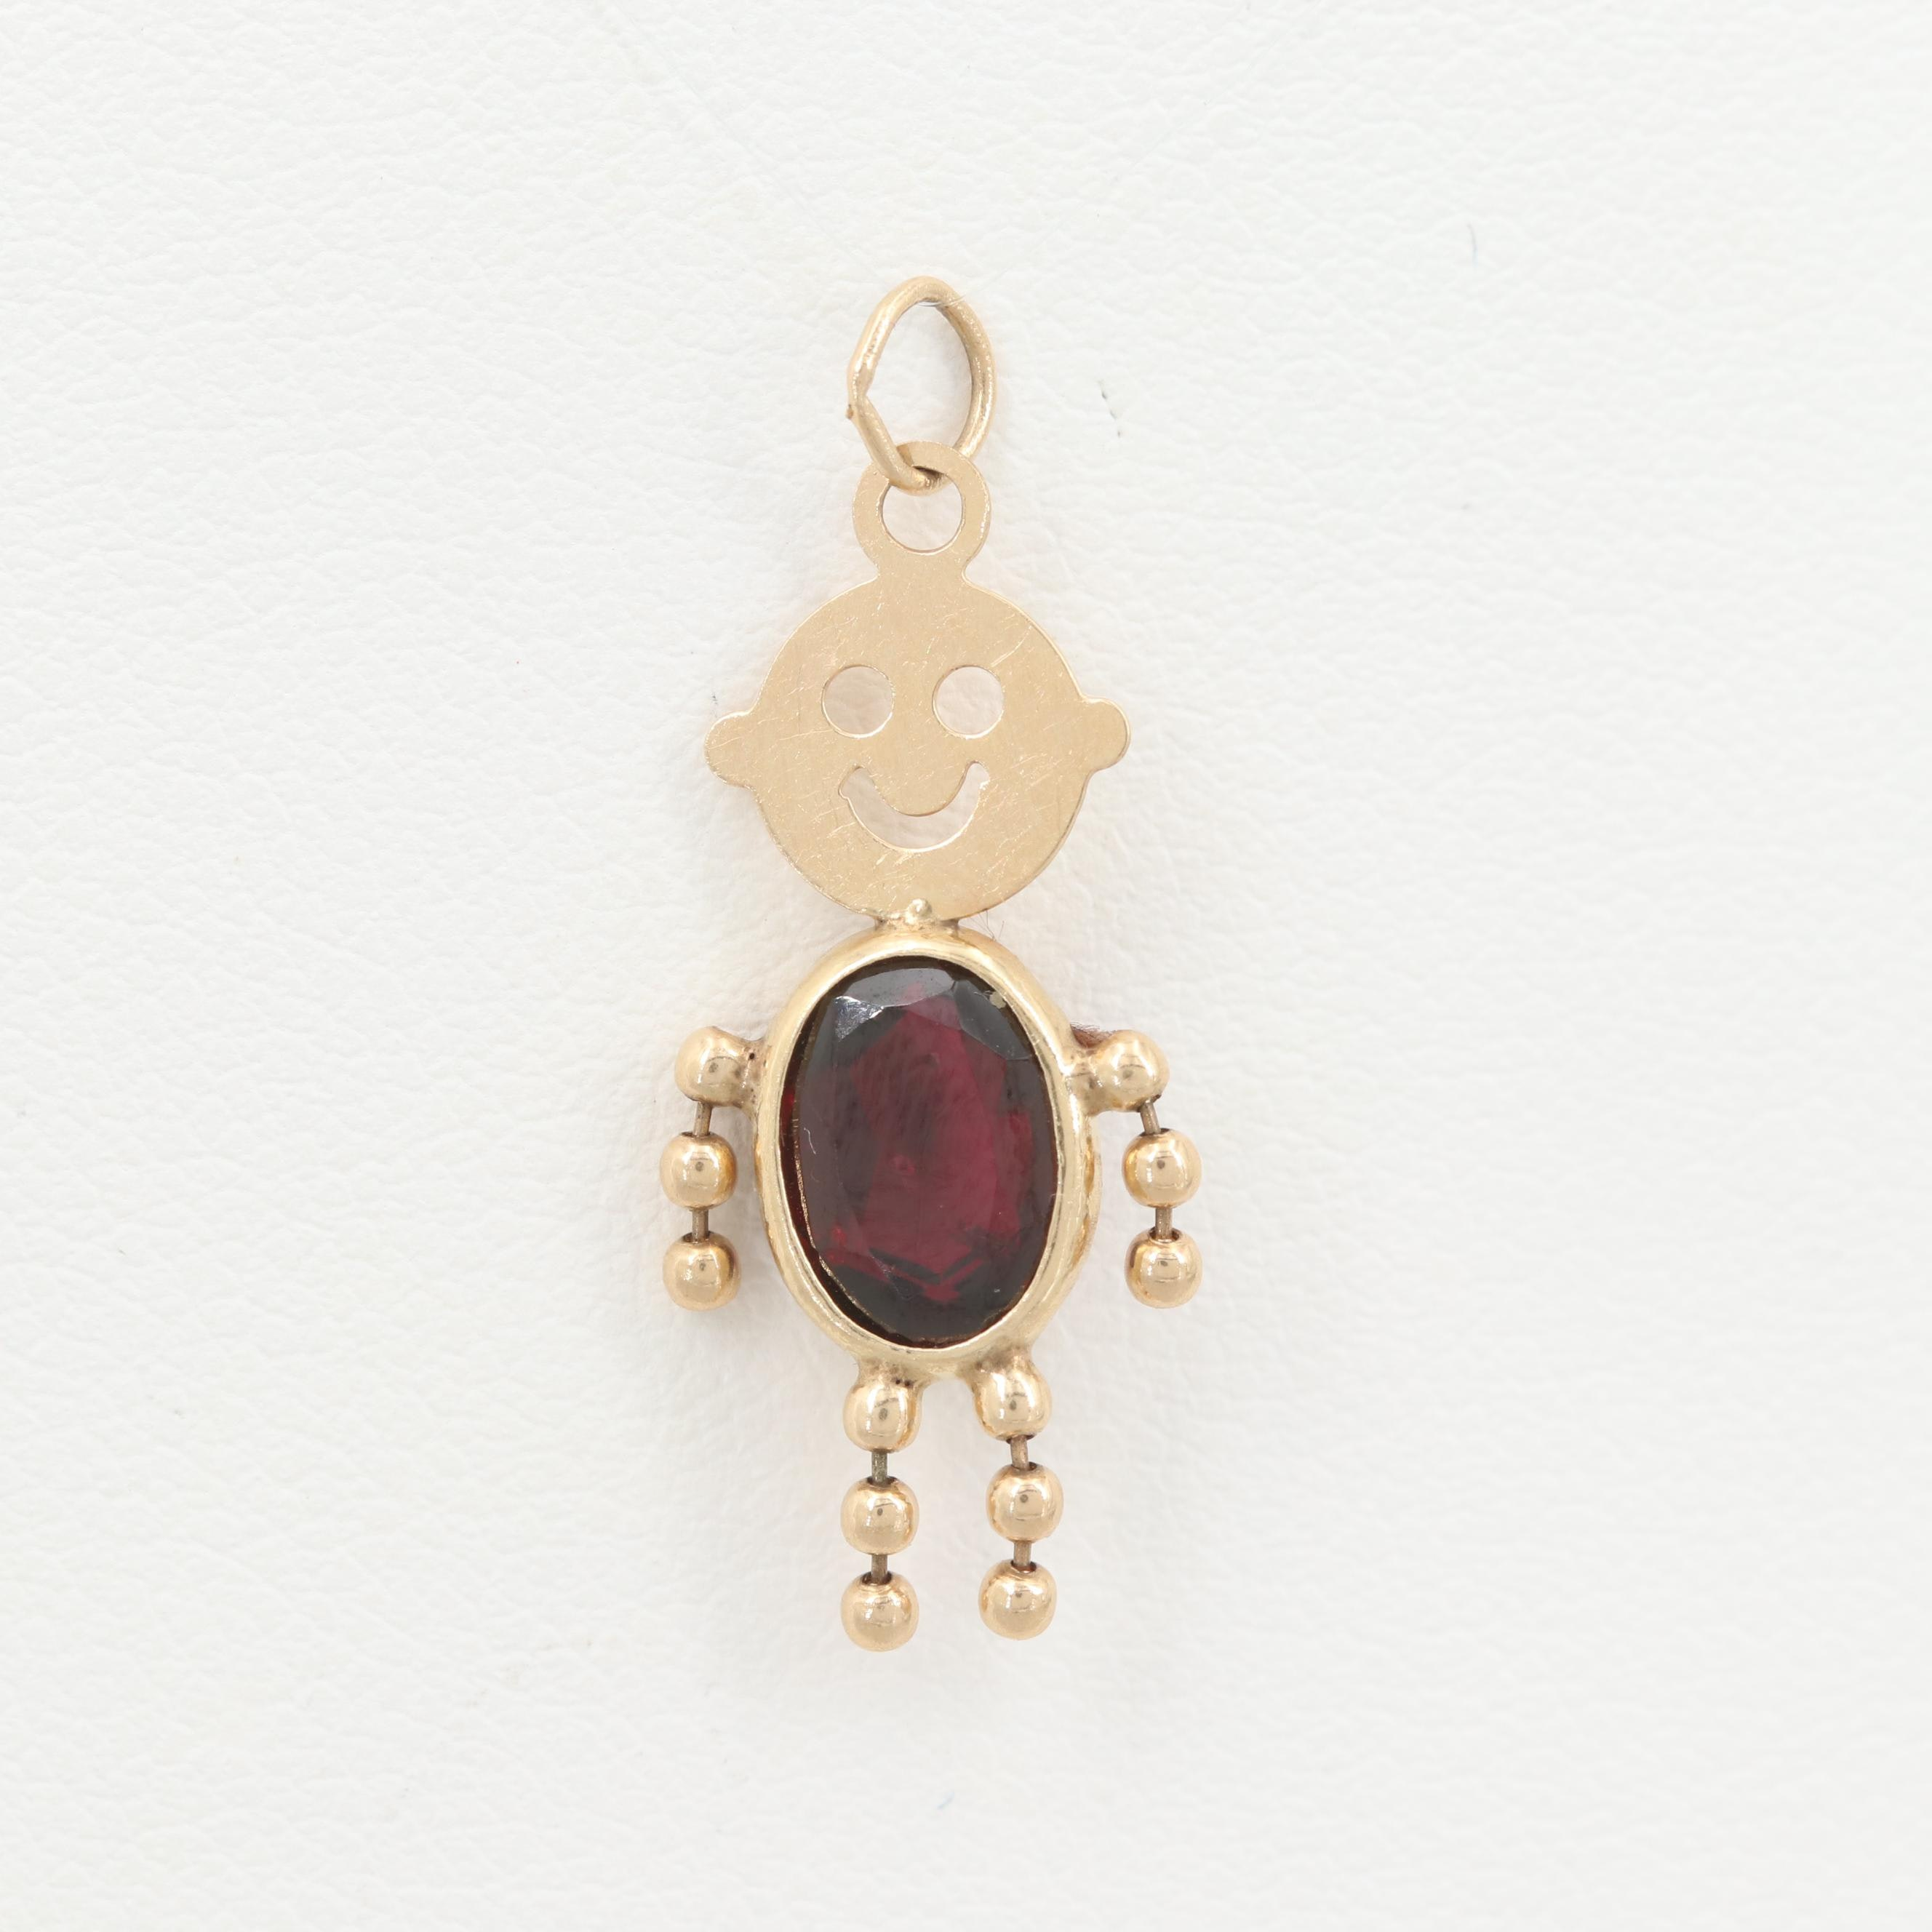 14K Yellow Gold Childrens Garnet Birthstone Pendant